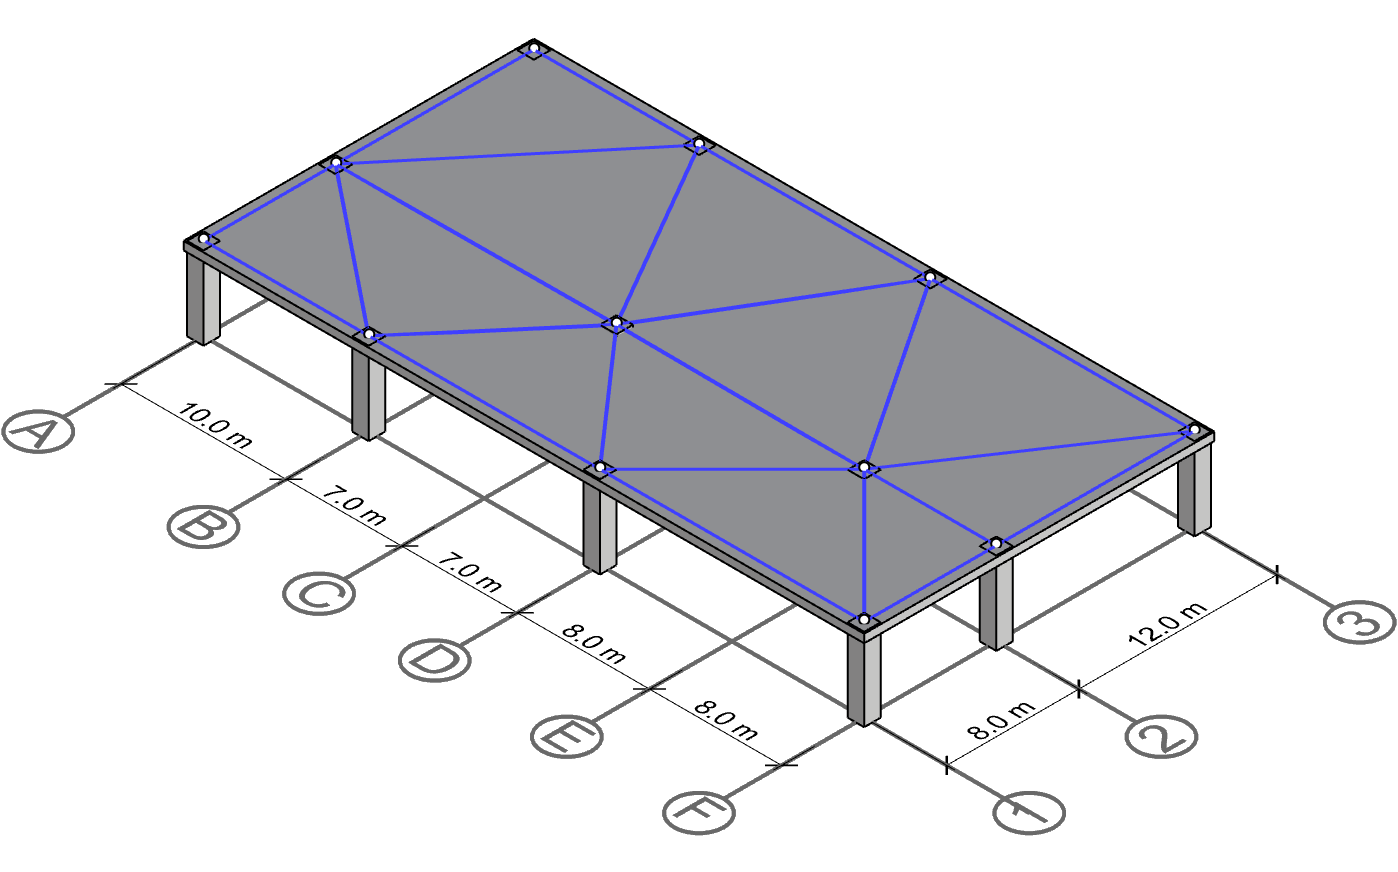 Connectivity lines between the columns